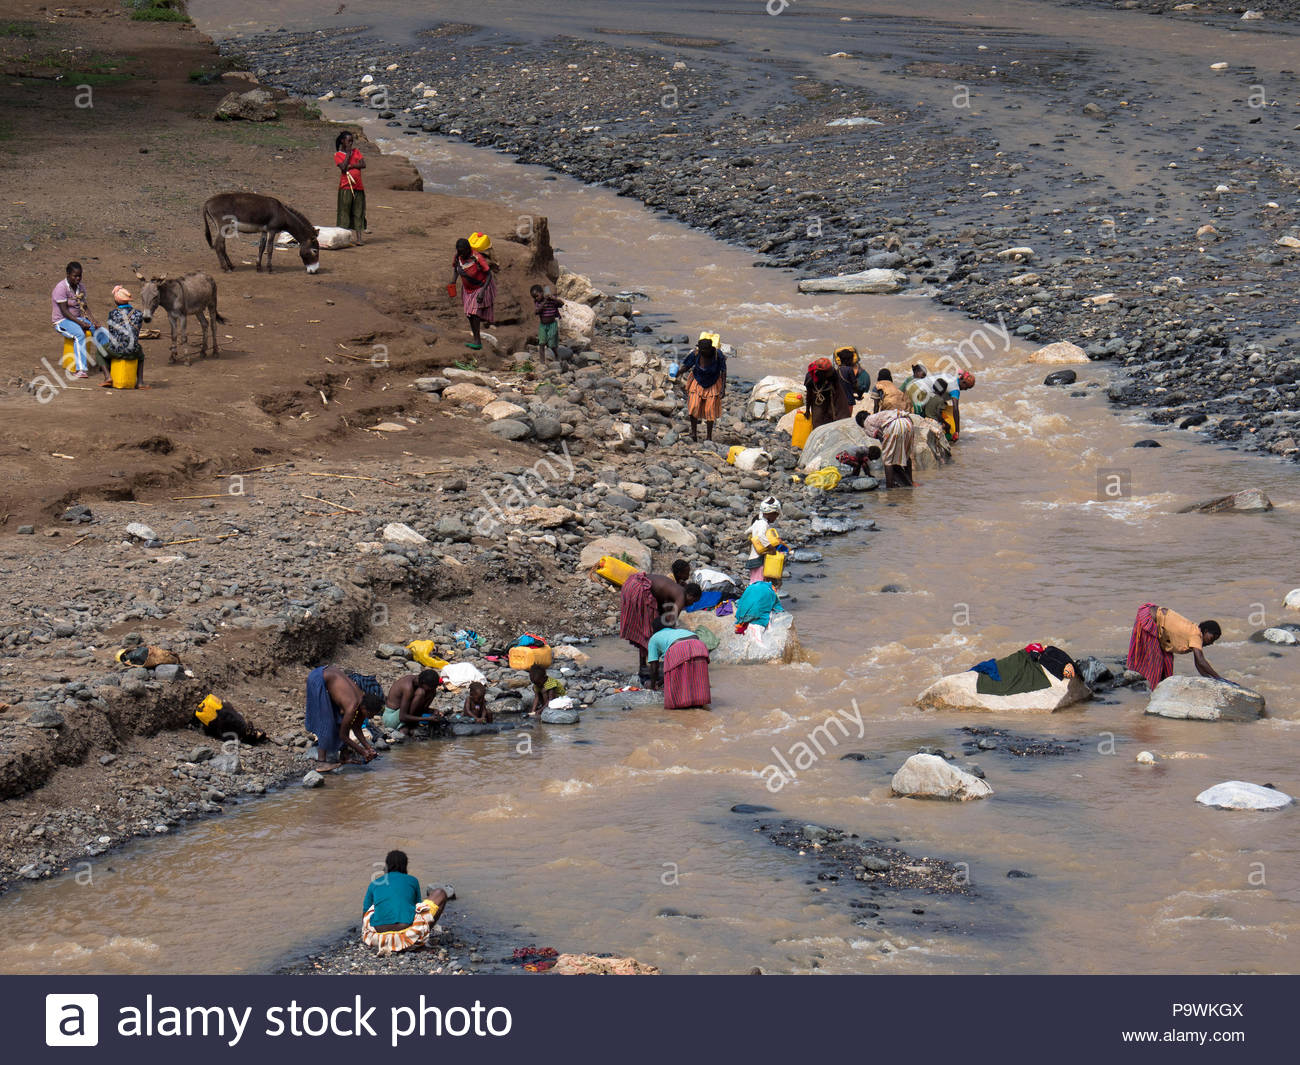 Women doing laundry at the river, Ethiopia - Stock Image